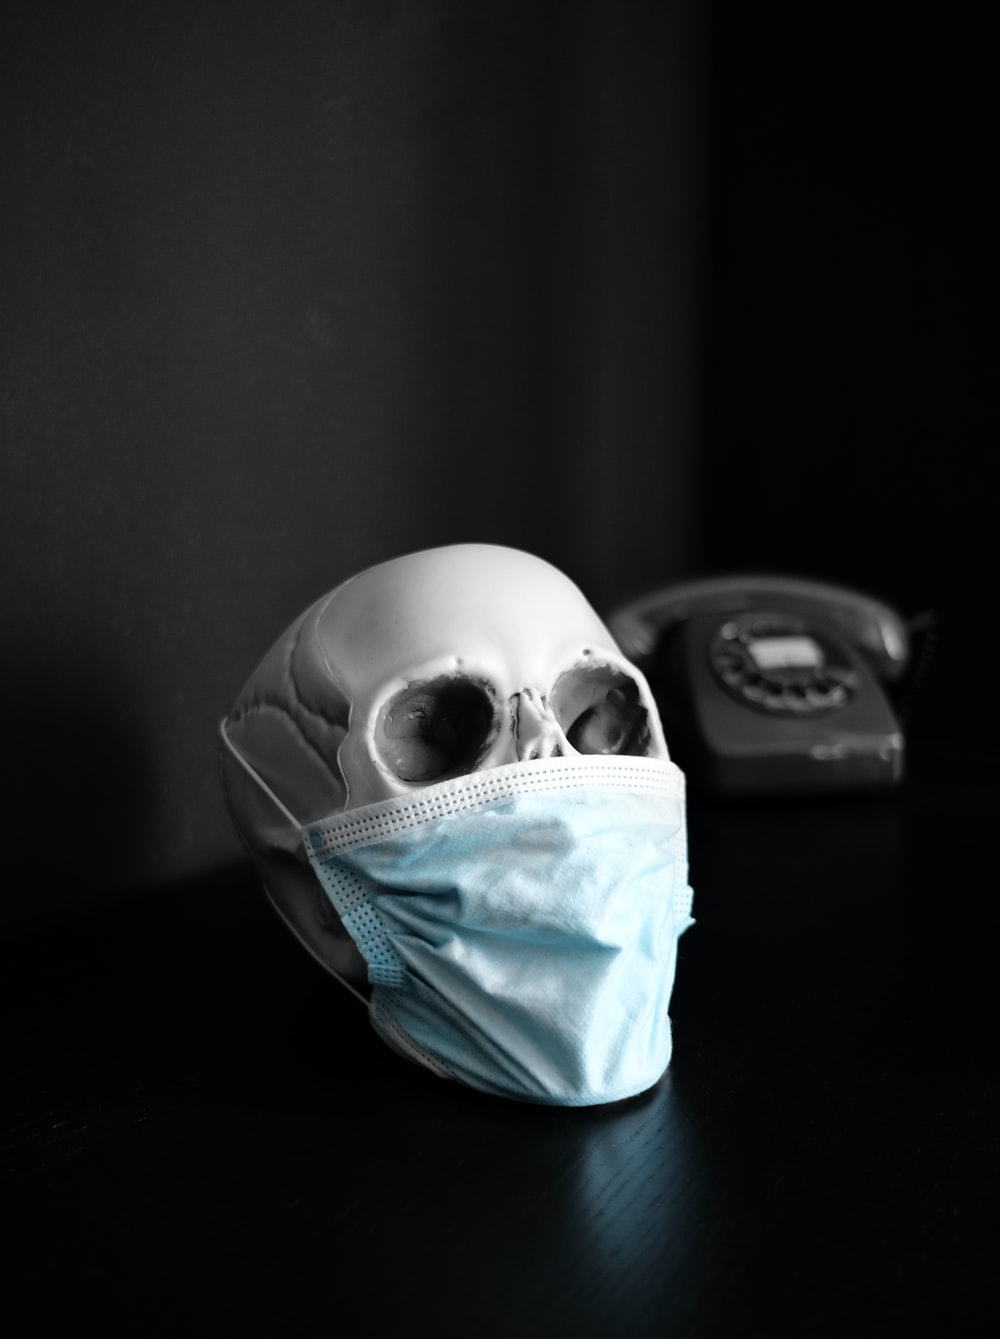 white and blue skull on black surface